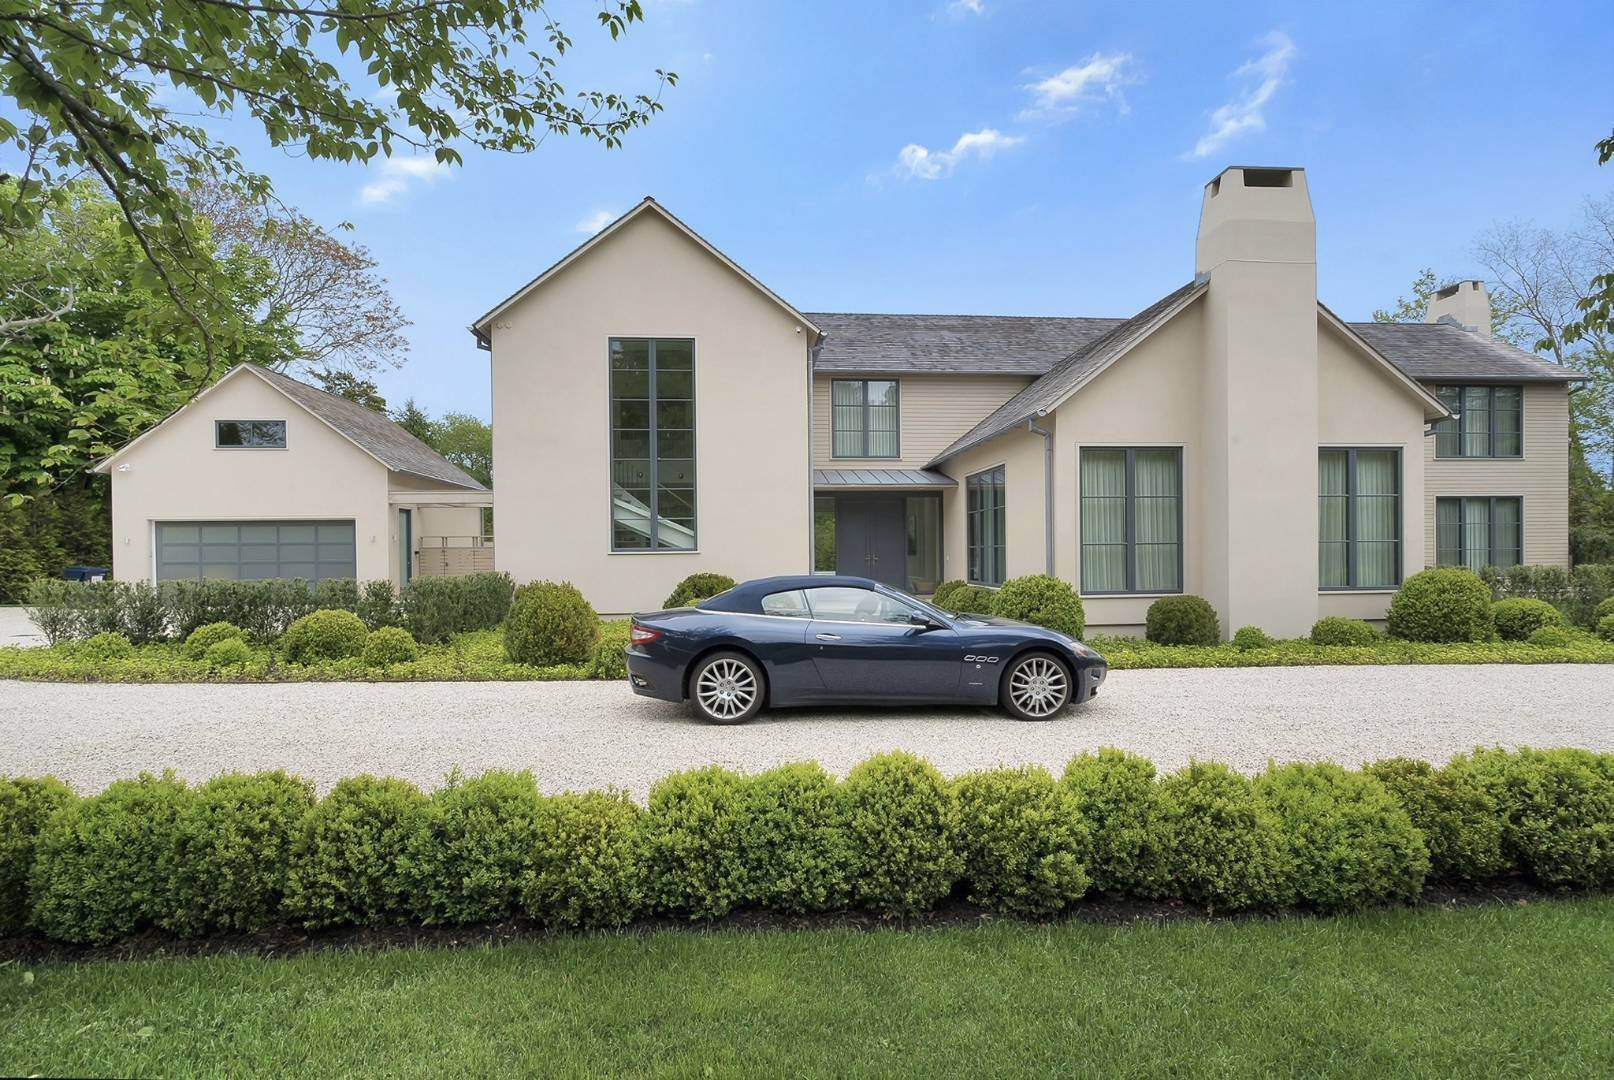 Single Family Home at Exceptional In The Lanes Amagansett, NY 11930